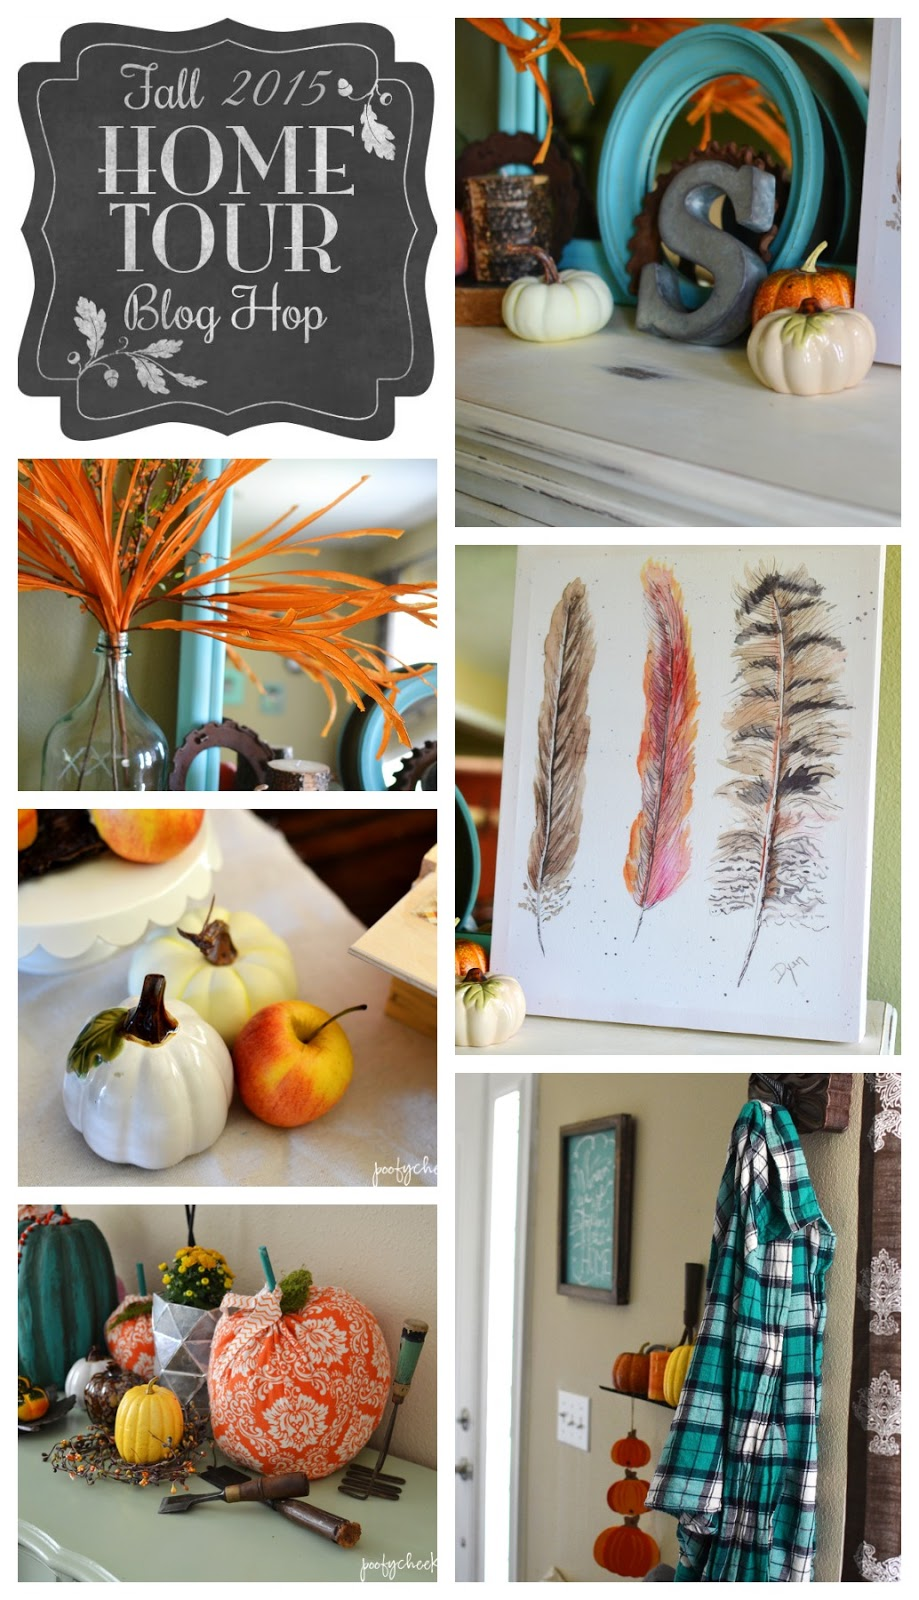 Aqua and Orange Fall Home Tour + Blog Hop